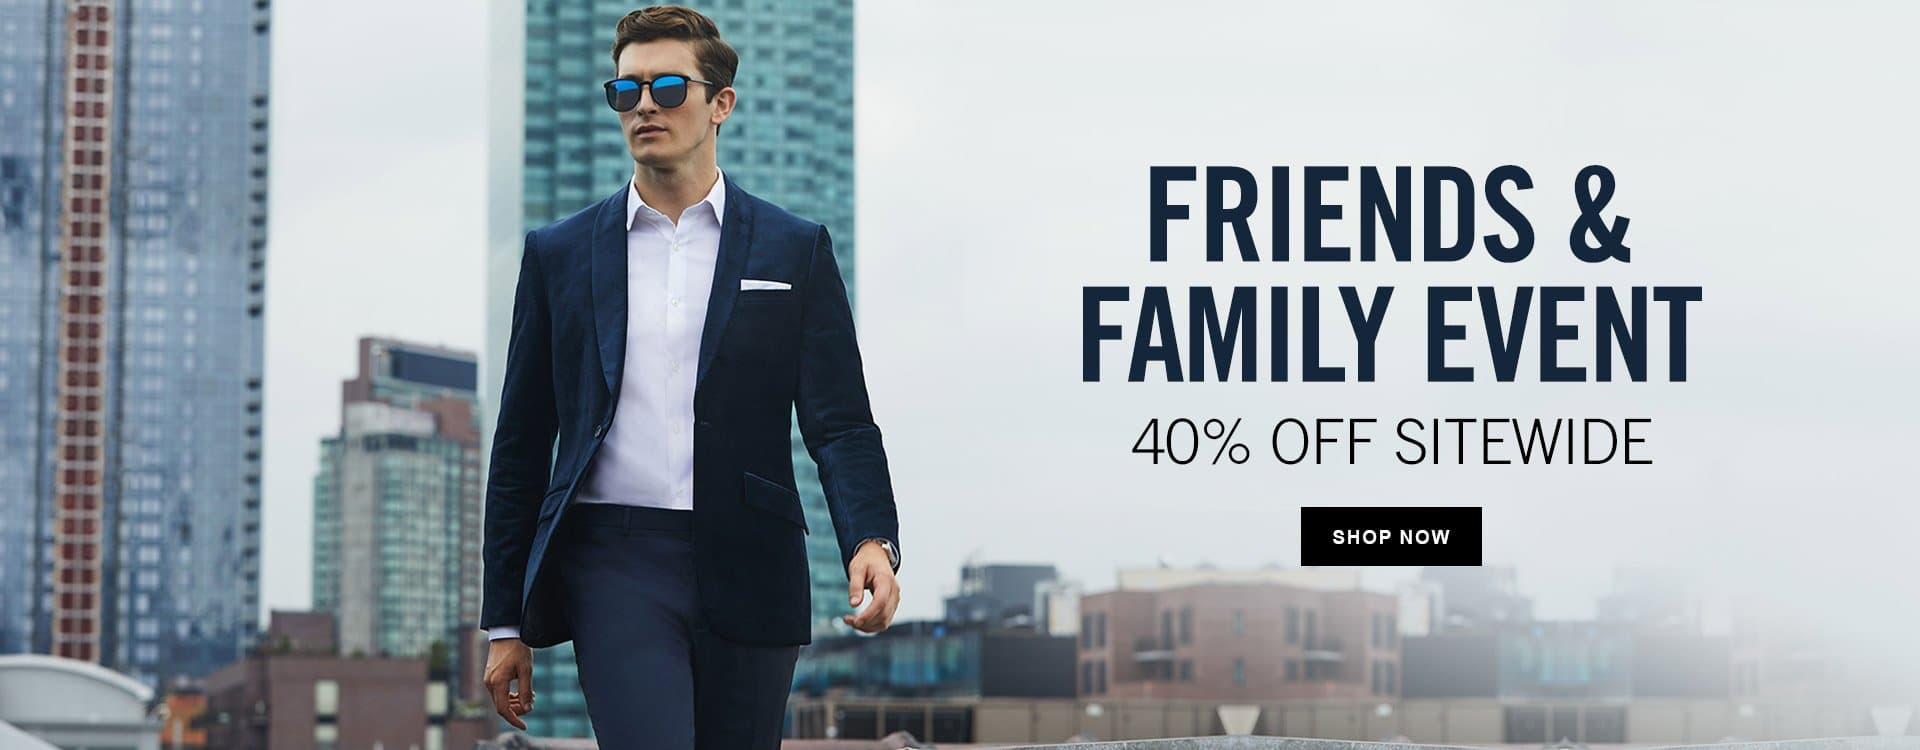 FREINDS & FAMILY | 40% OFF SITEWIDE - SHOP NOW